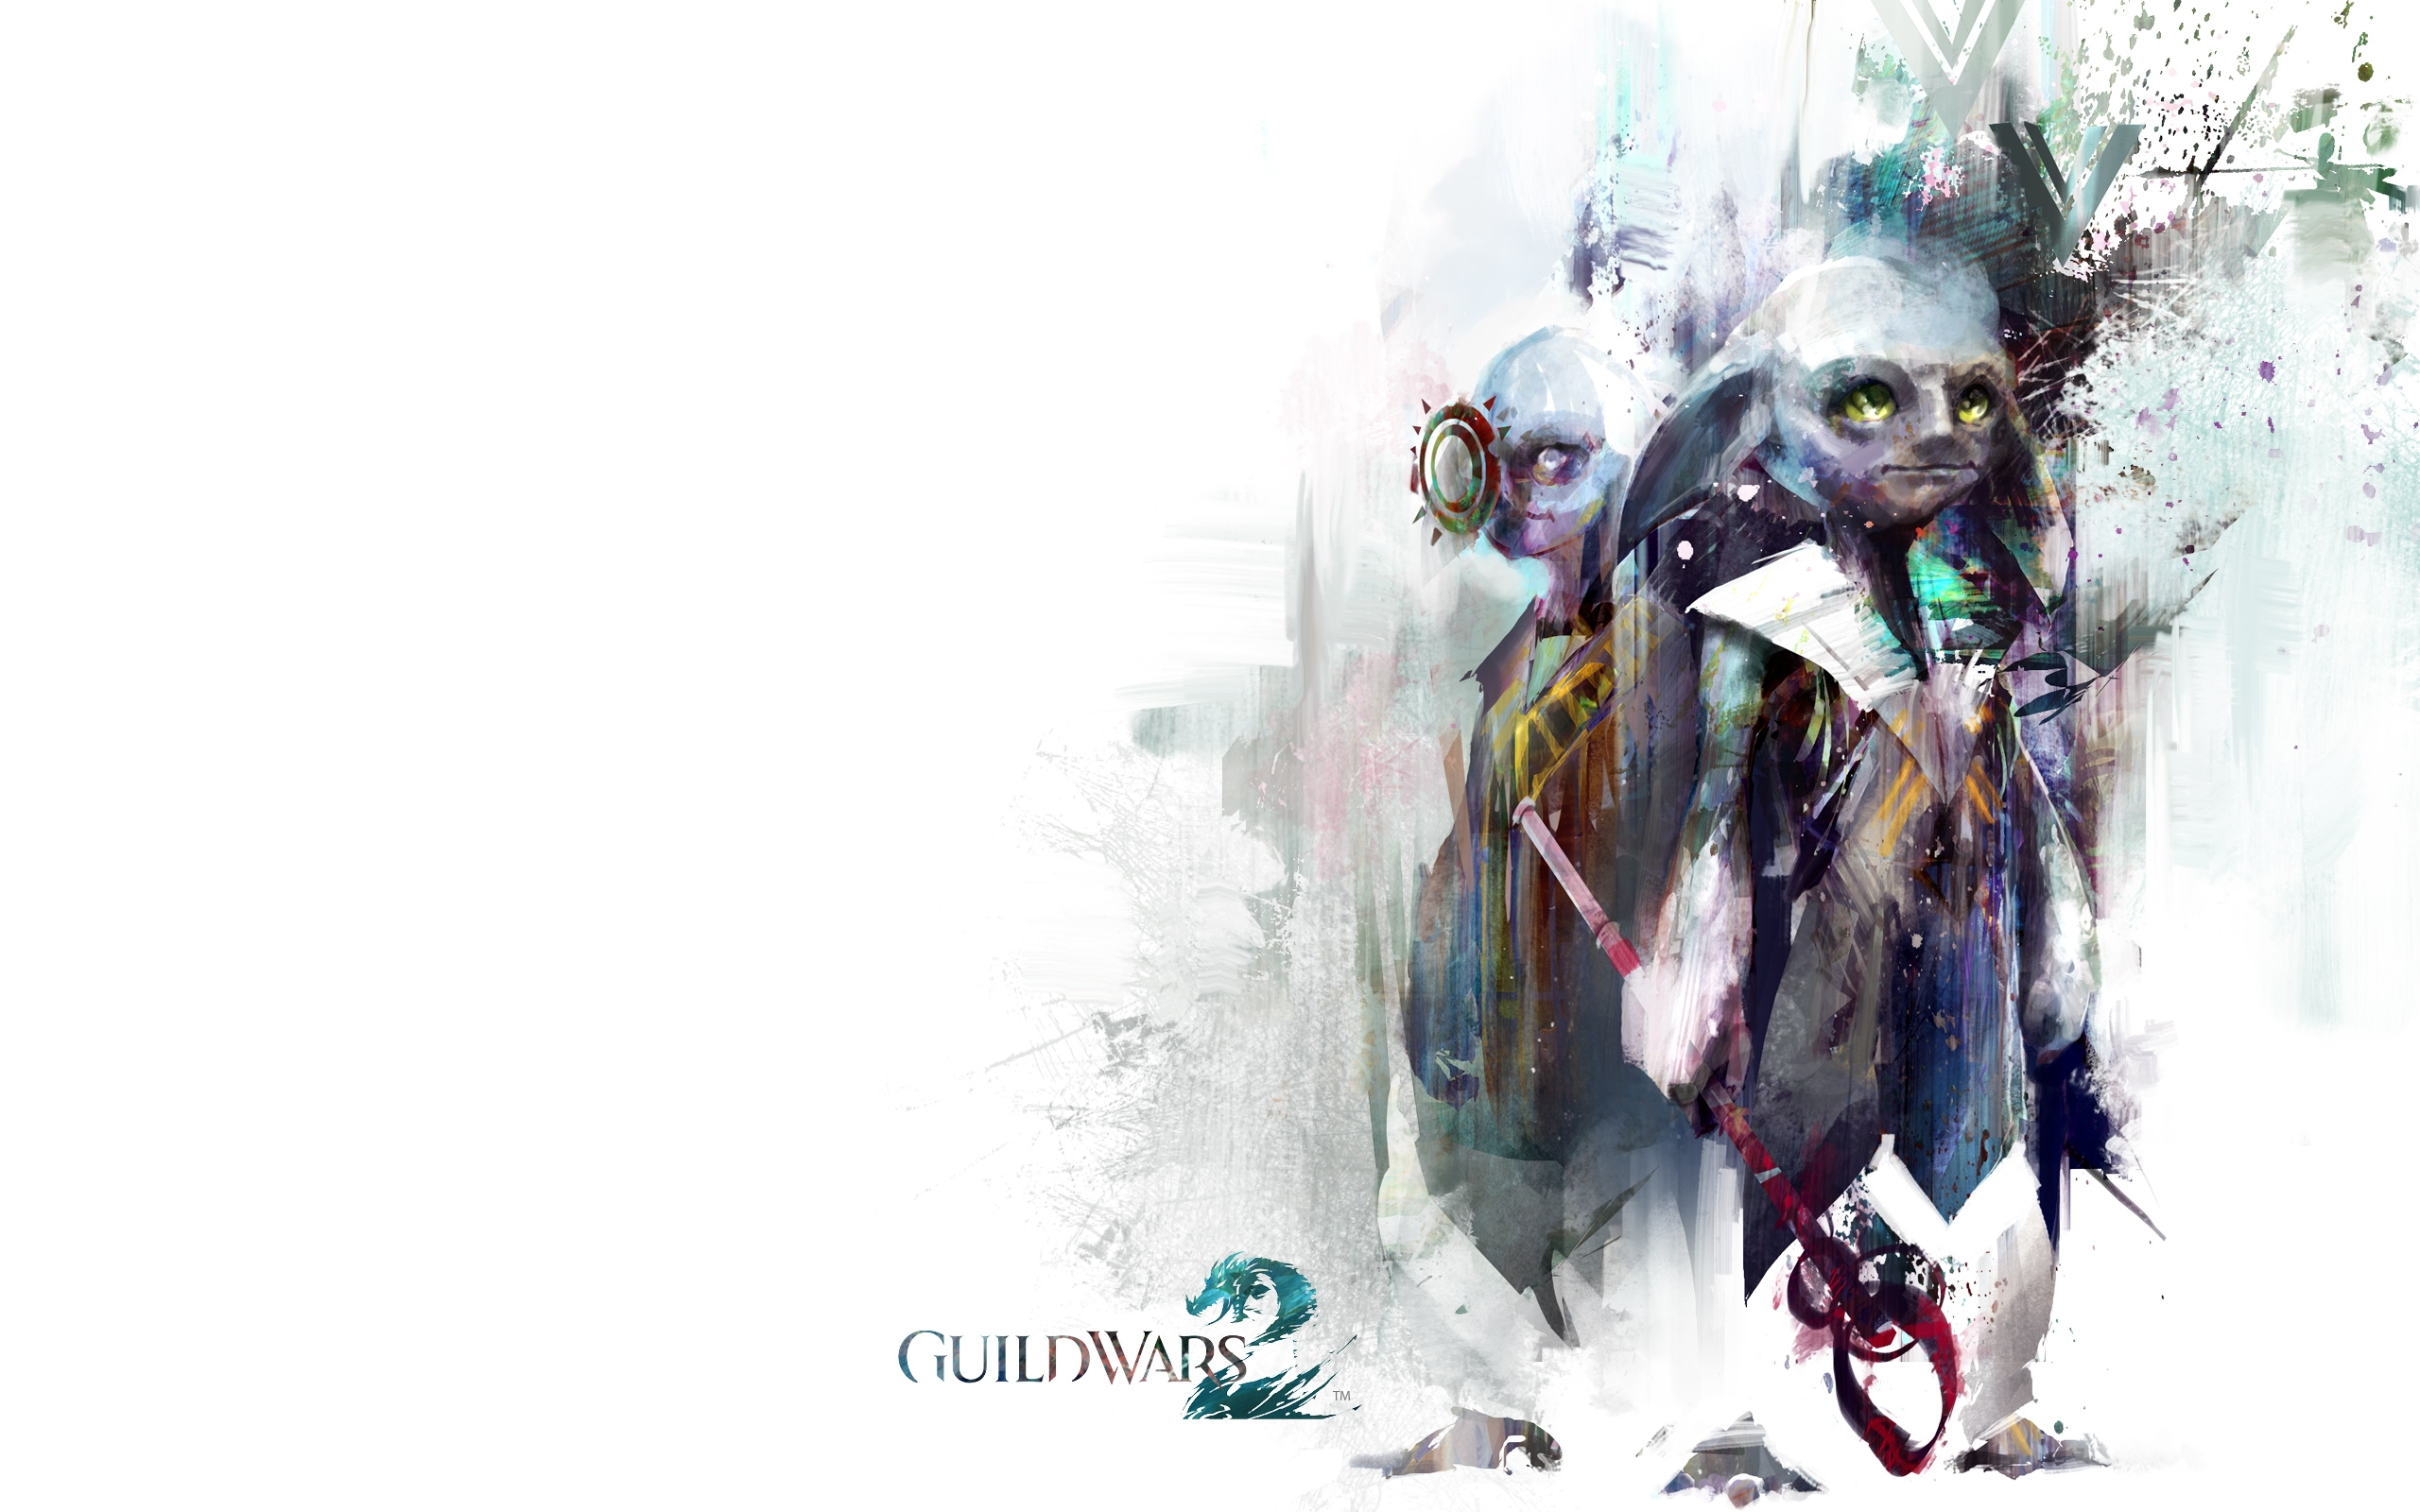 Guild Wars 2 Wallpapers, Pictures, Images